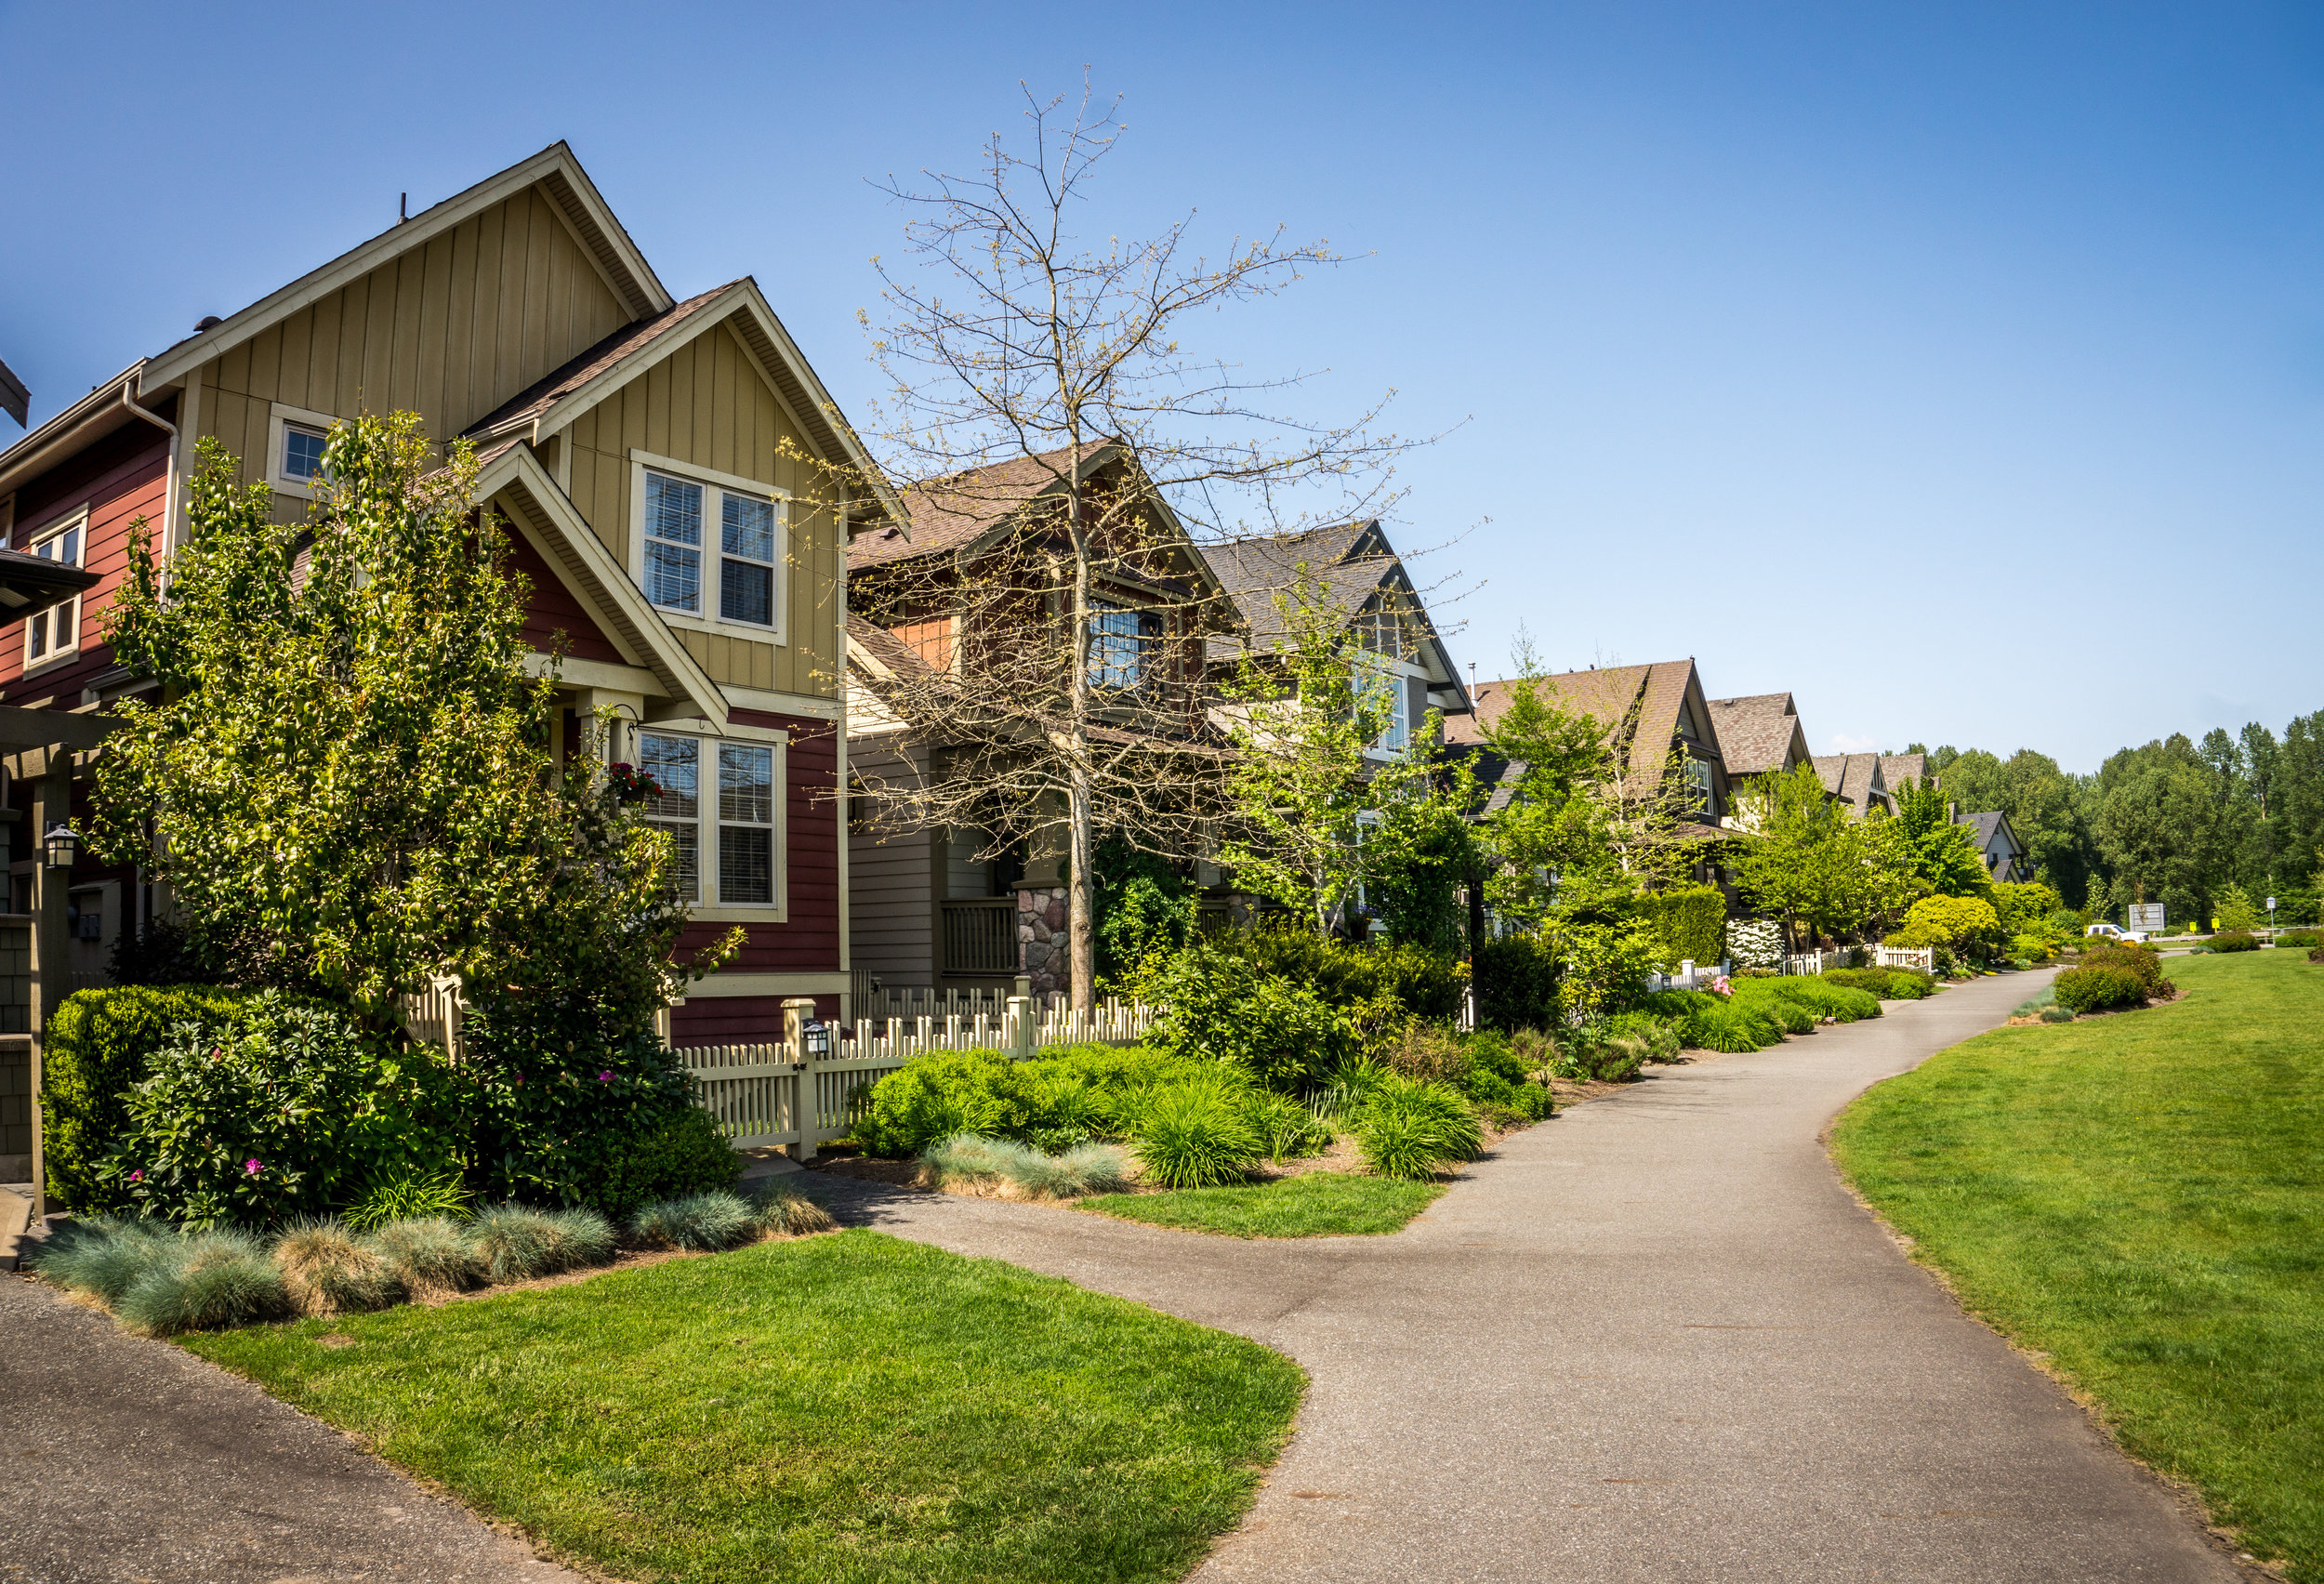 Suburbia in Fort Langley, a historic village in the Fraser Valley of British Columbia